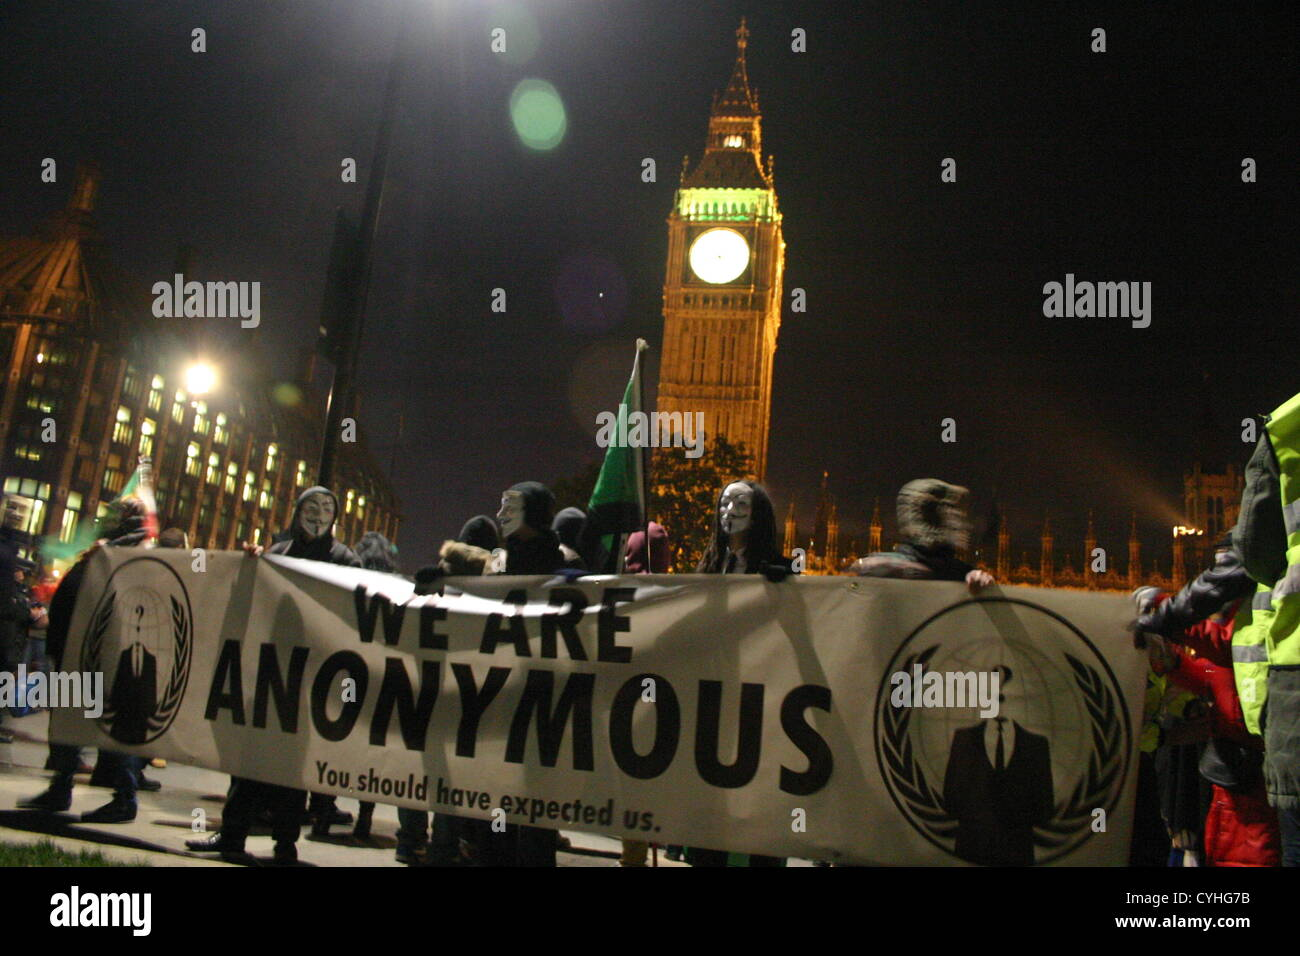 London, UK. 5th November 2012. Anonymous UK protesters gather outside Parliament in London to demonstrate against - Stock Image